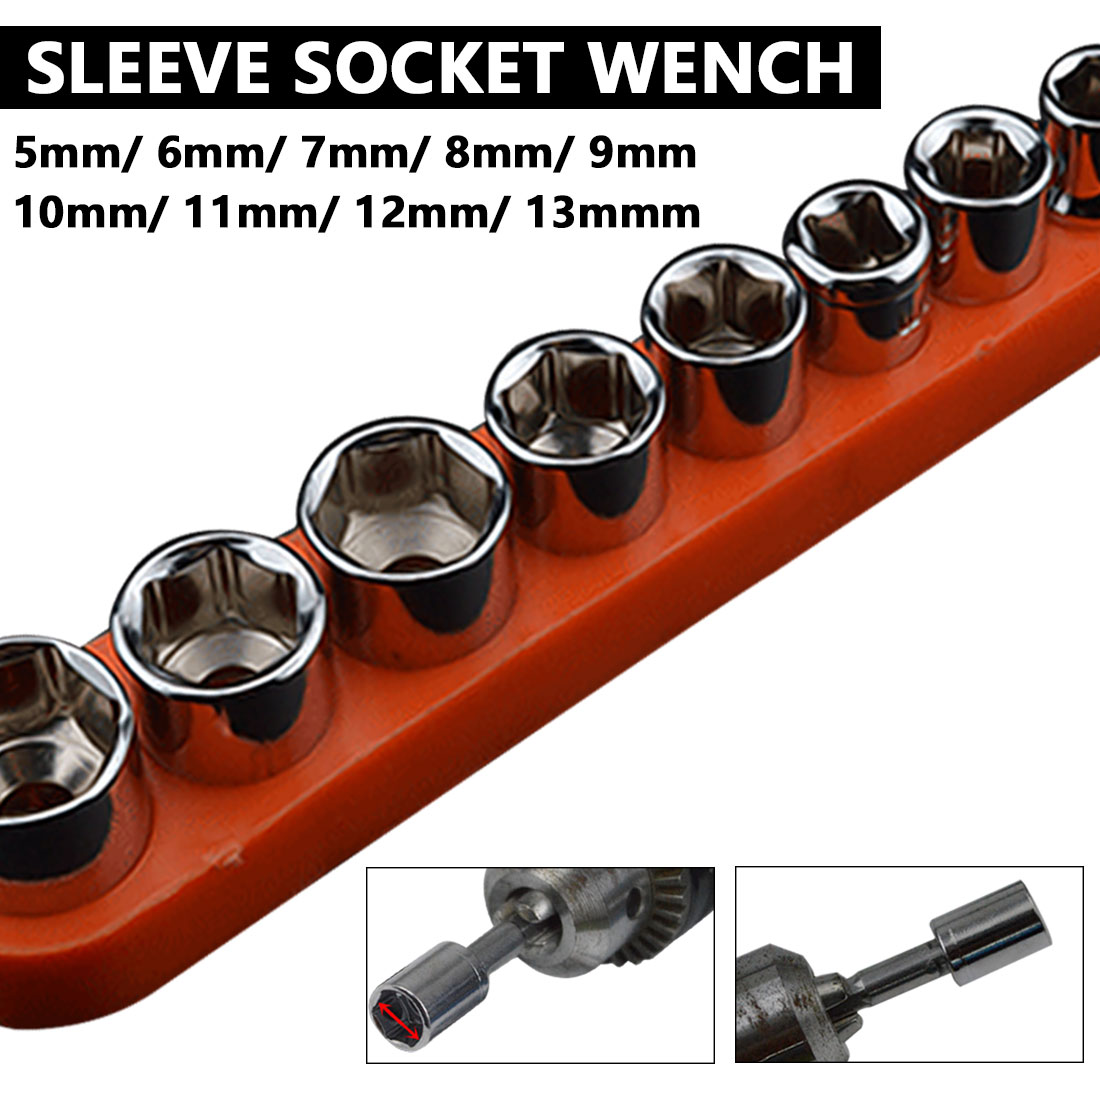 9pcs /10pcs 1/4 Inch Drive Hex Bit Socket Wrench Set Sleeve Wrench Set Wrench Adapter 5/6/7/8/9/10/11/12/13mm Hand Tools